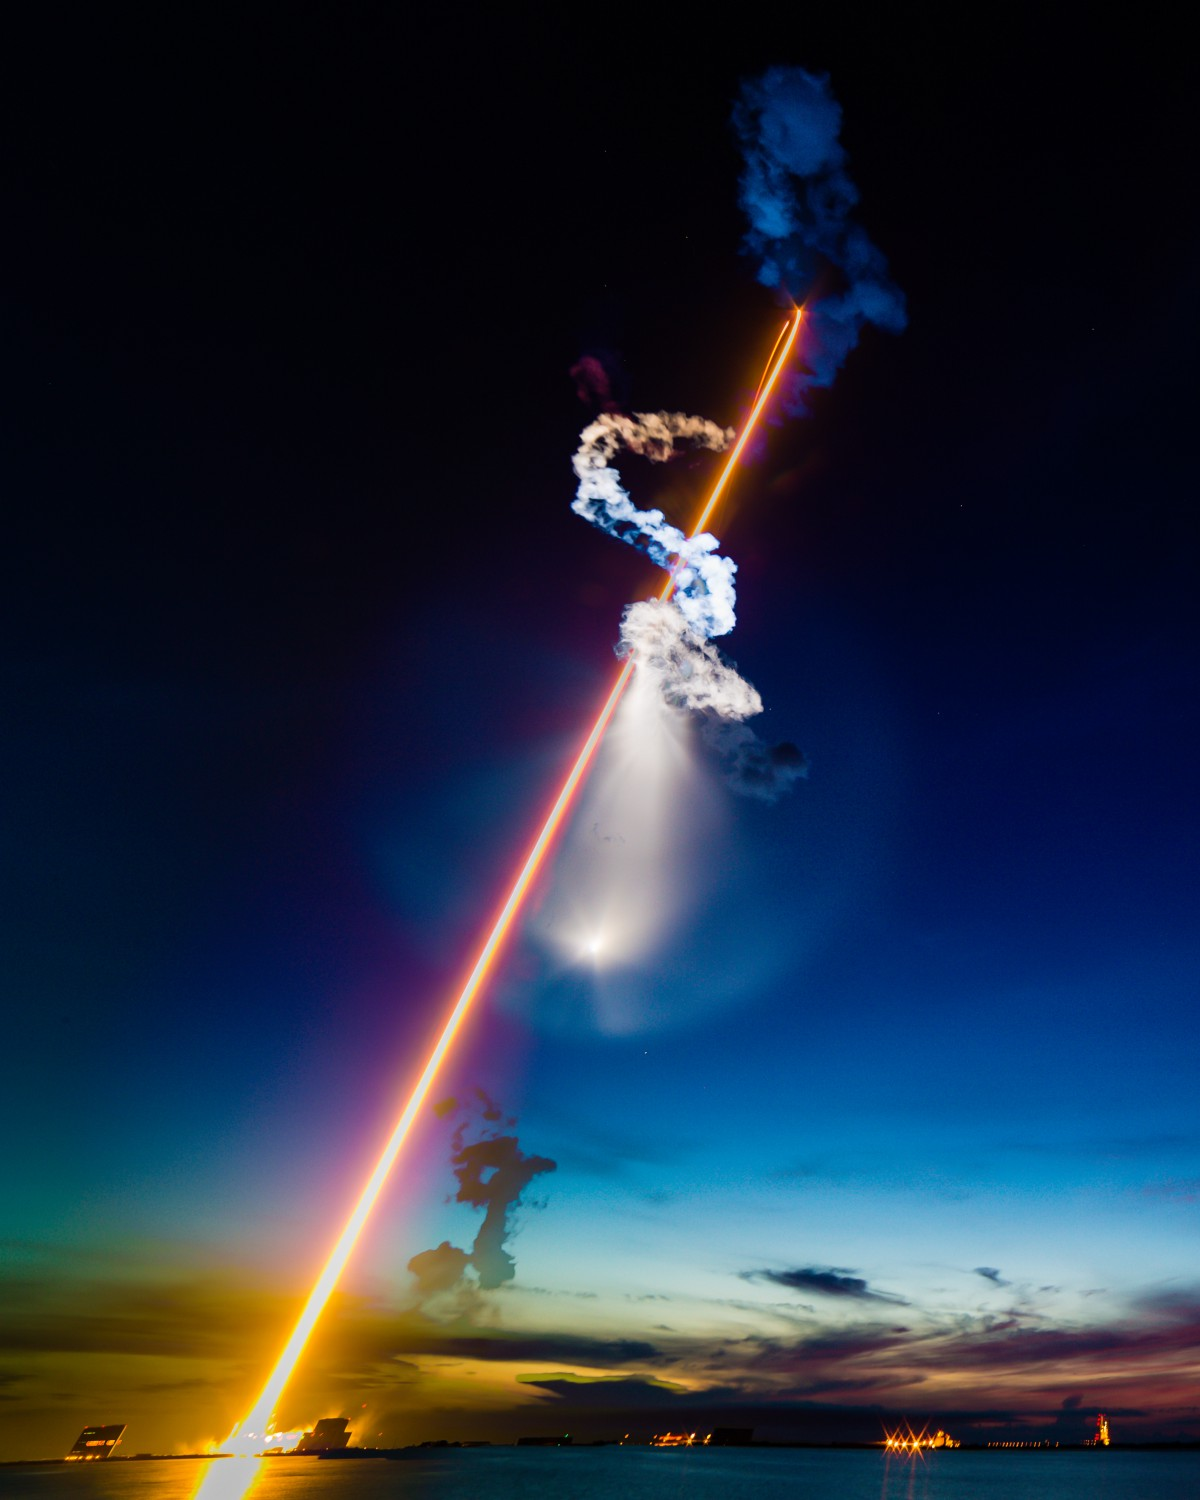 China Rocket Down: Humanity and the Falling Sky